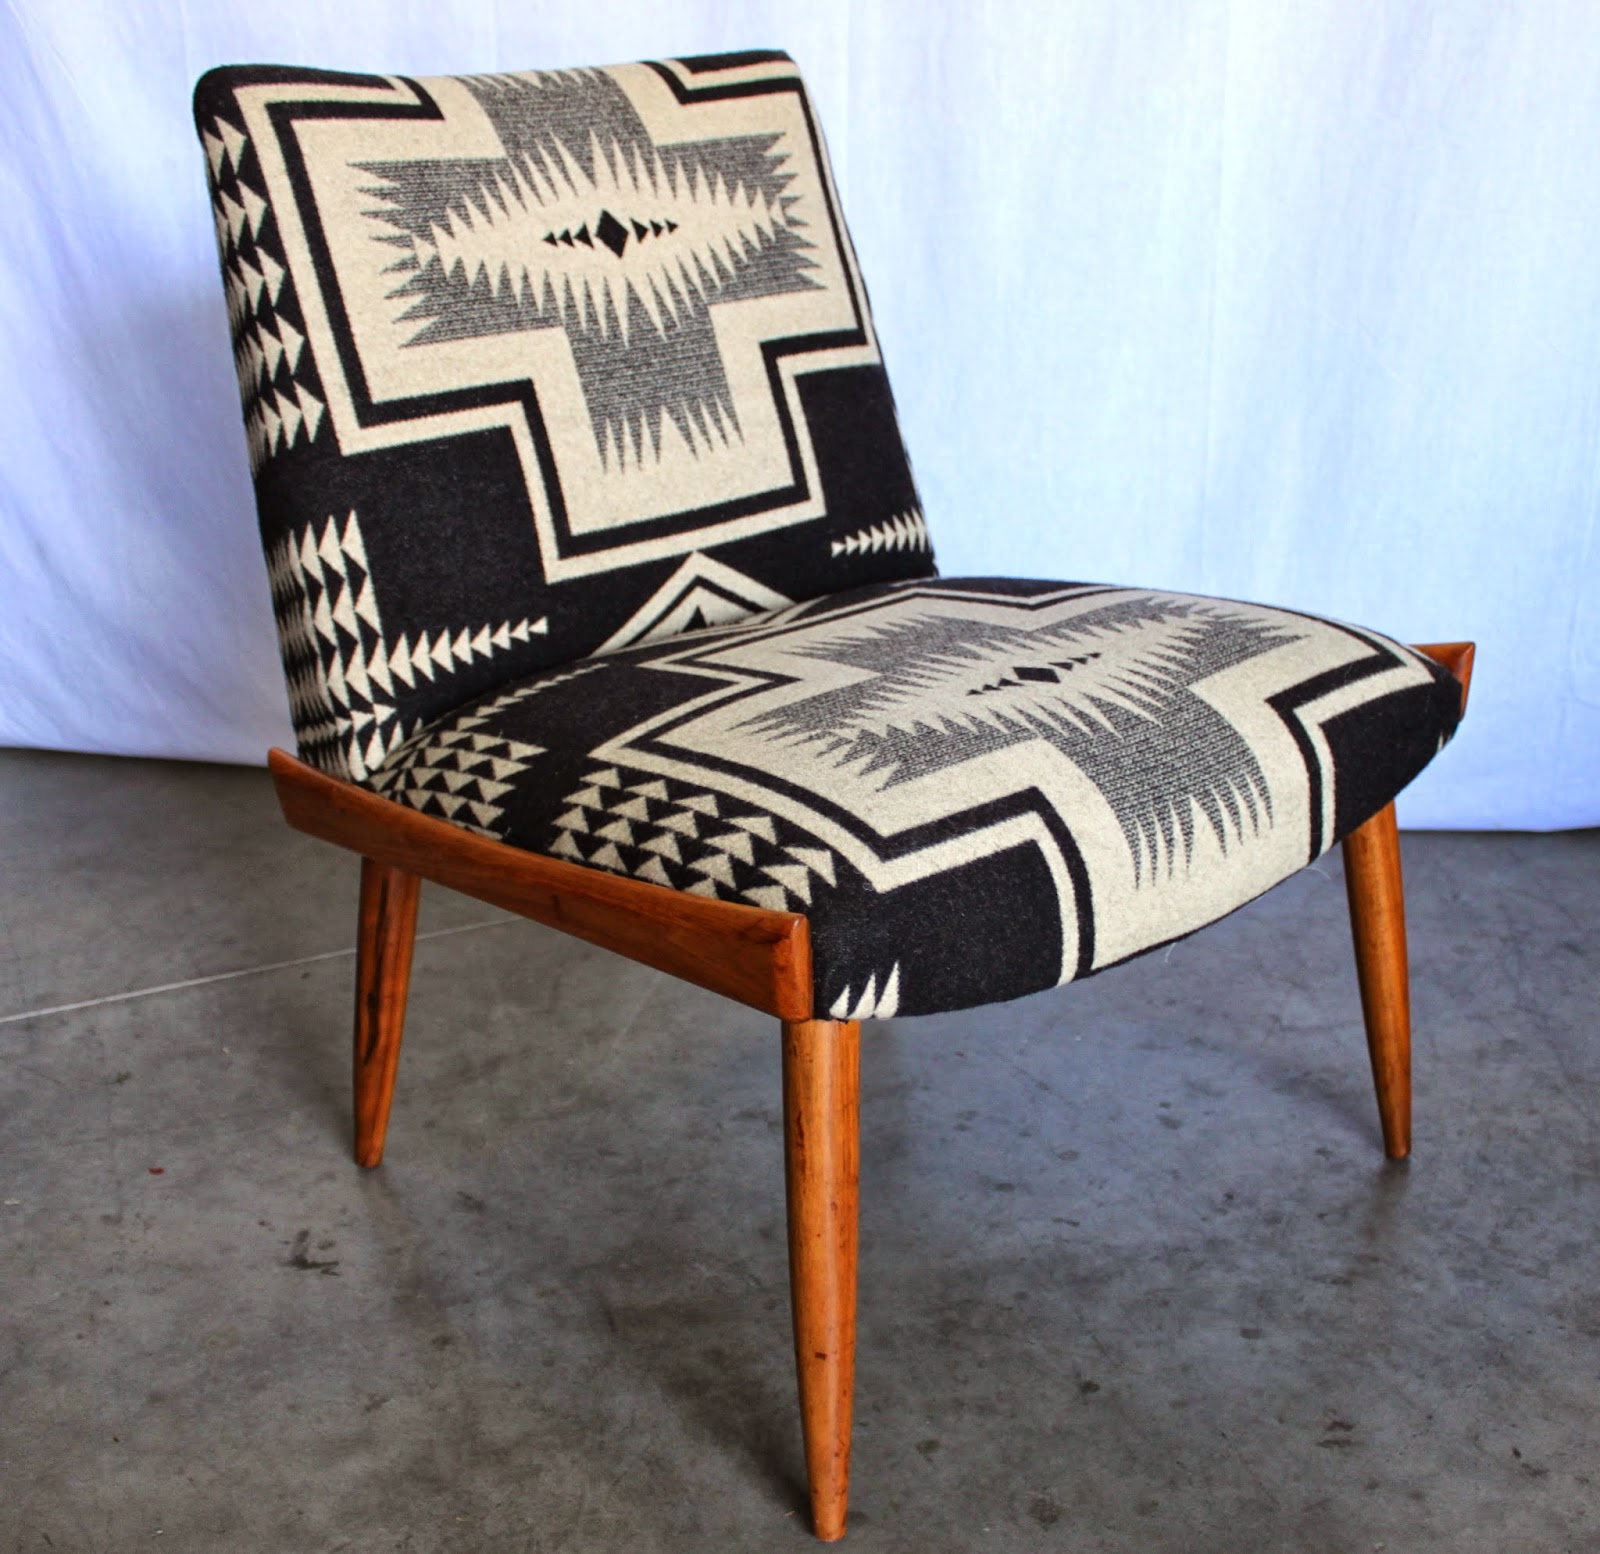 Bedroom Chair With Blanket Stylish Folding Chairs Modernhaus Shop Update Mid Century Pendleton Pair